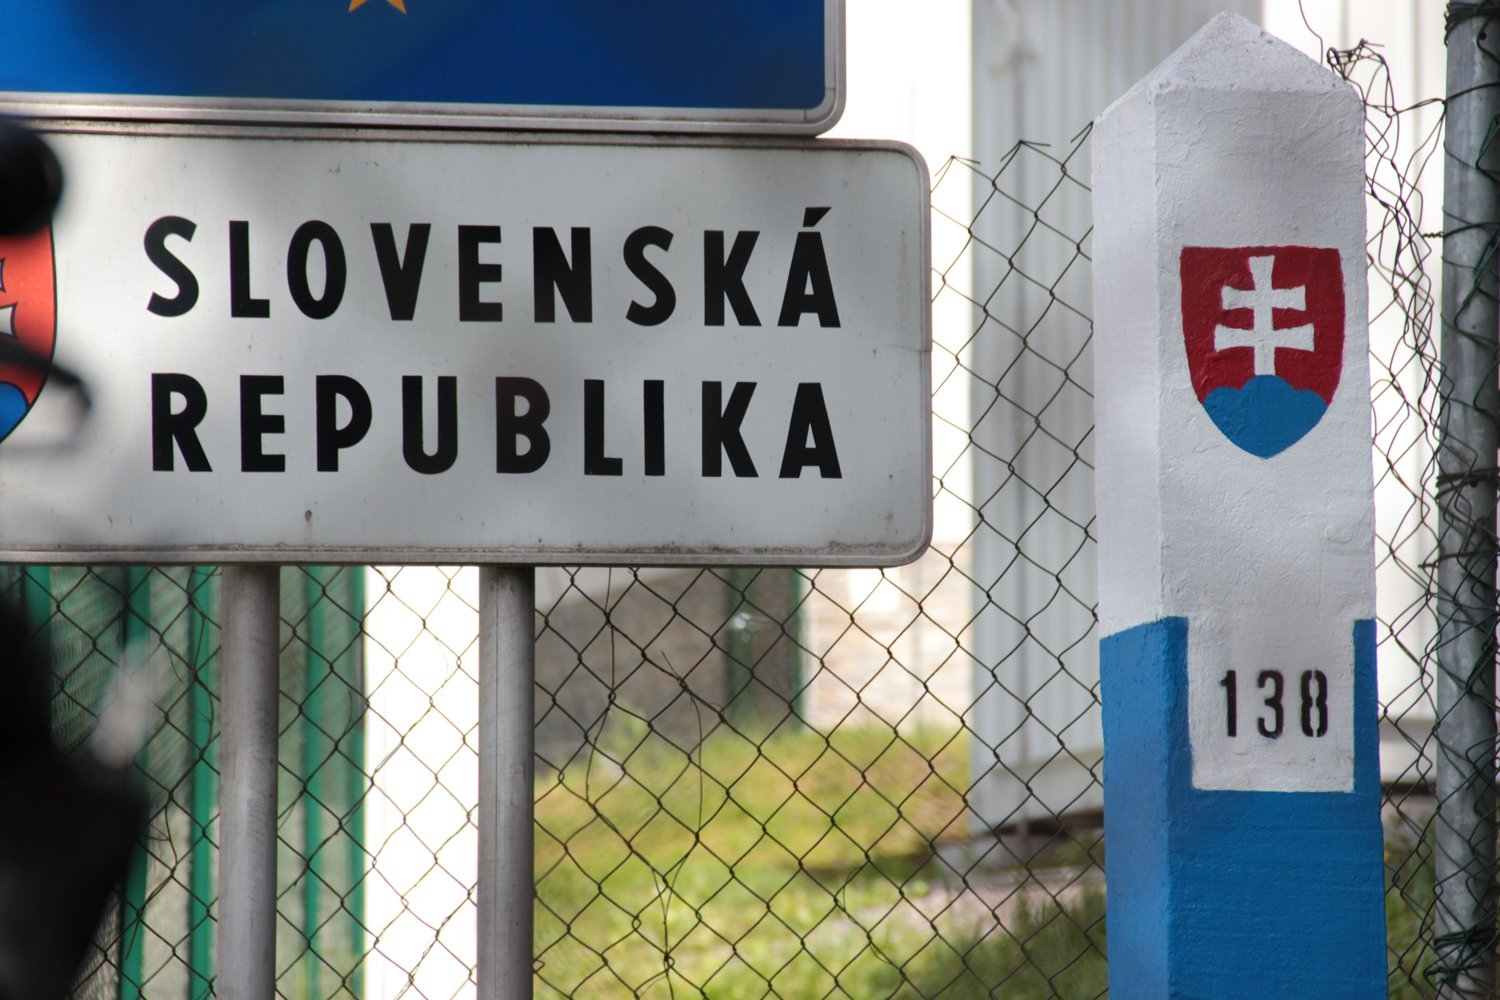 Slovakia calls up troops as cases rise